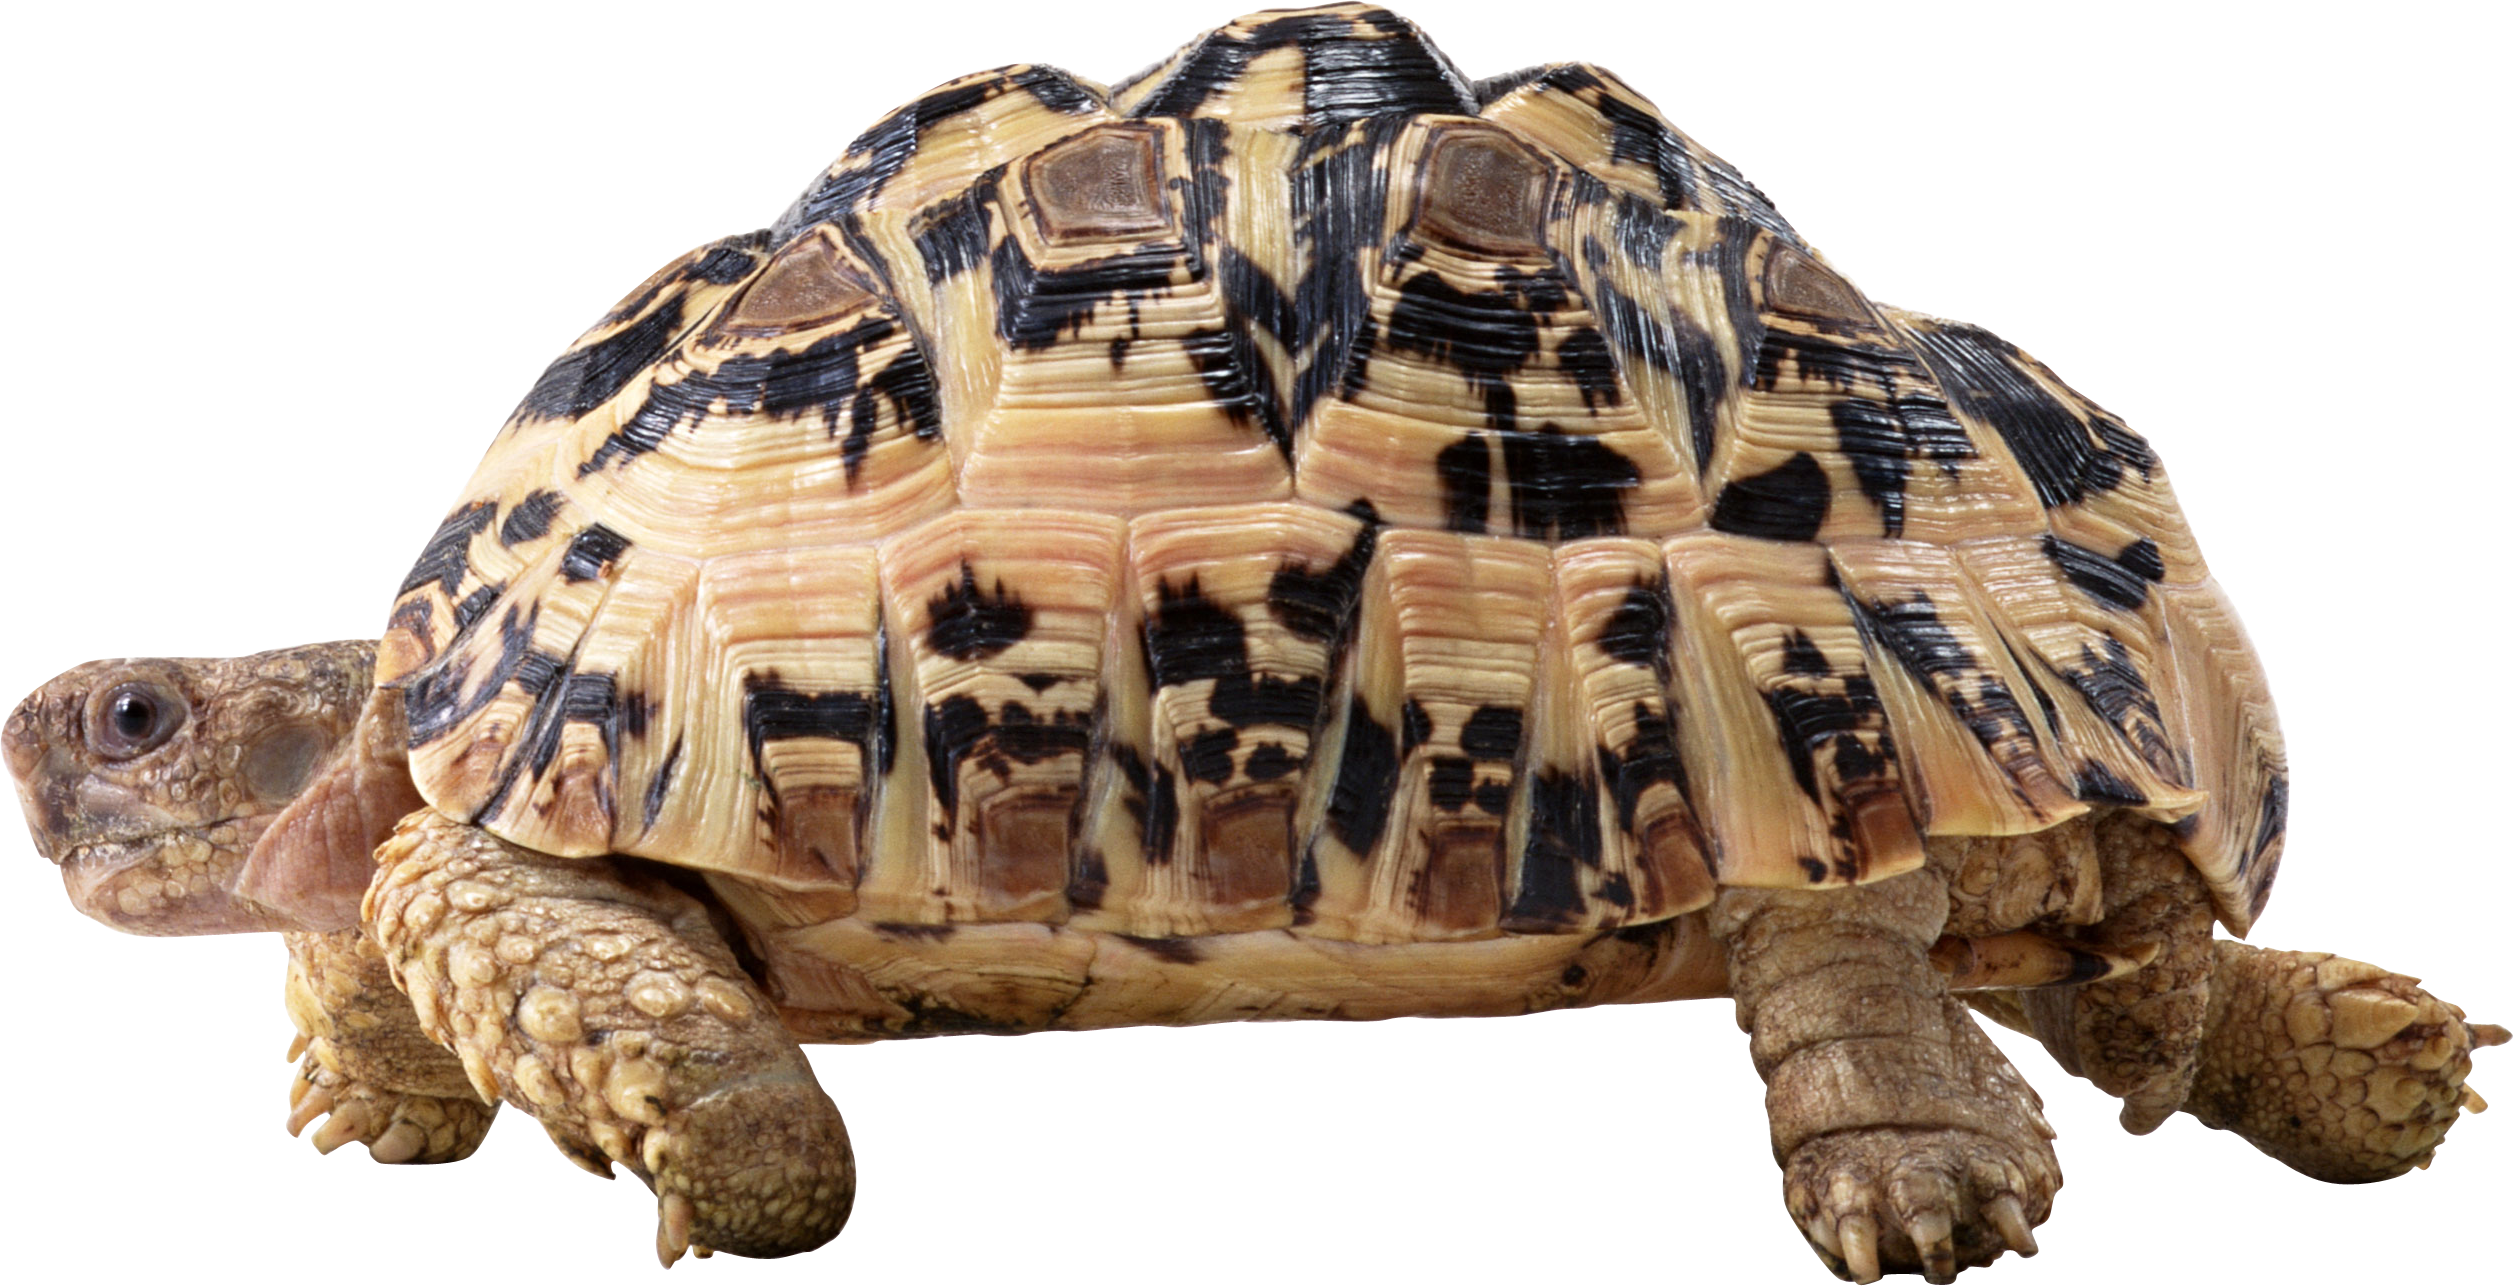 Download and use Turtle Transparent PNG File